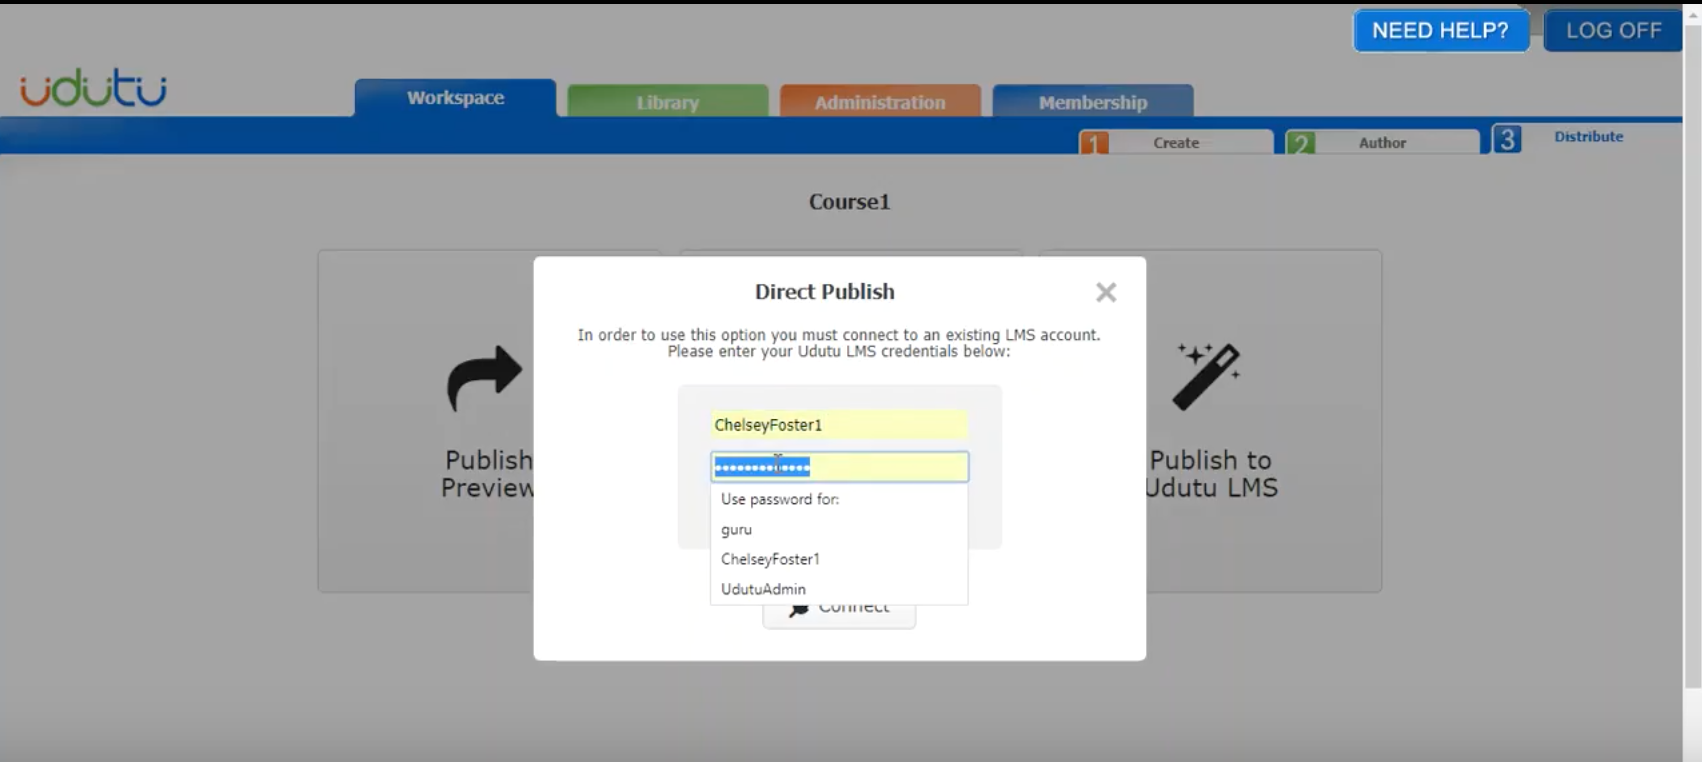 Sign in securely in order to publish courses directly to Udutu LMS